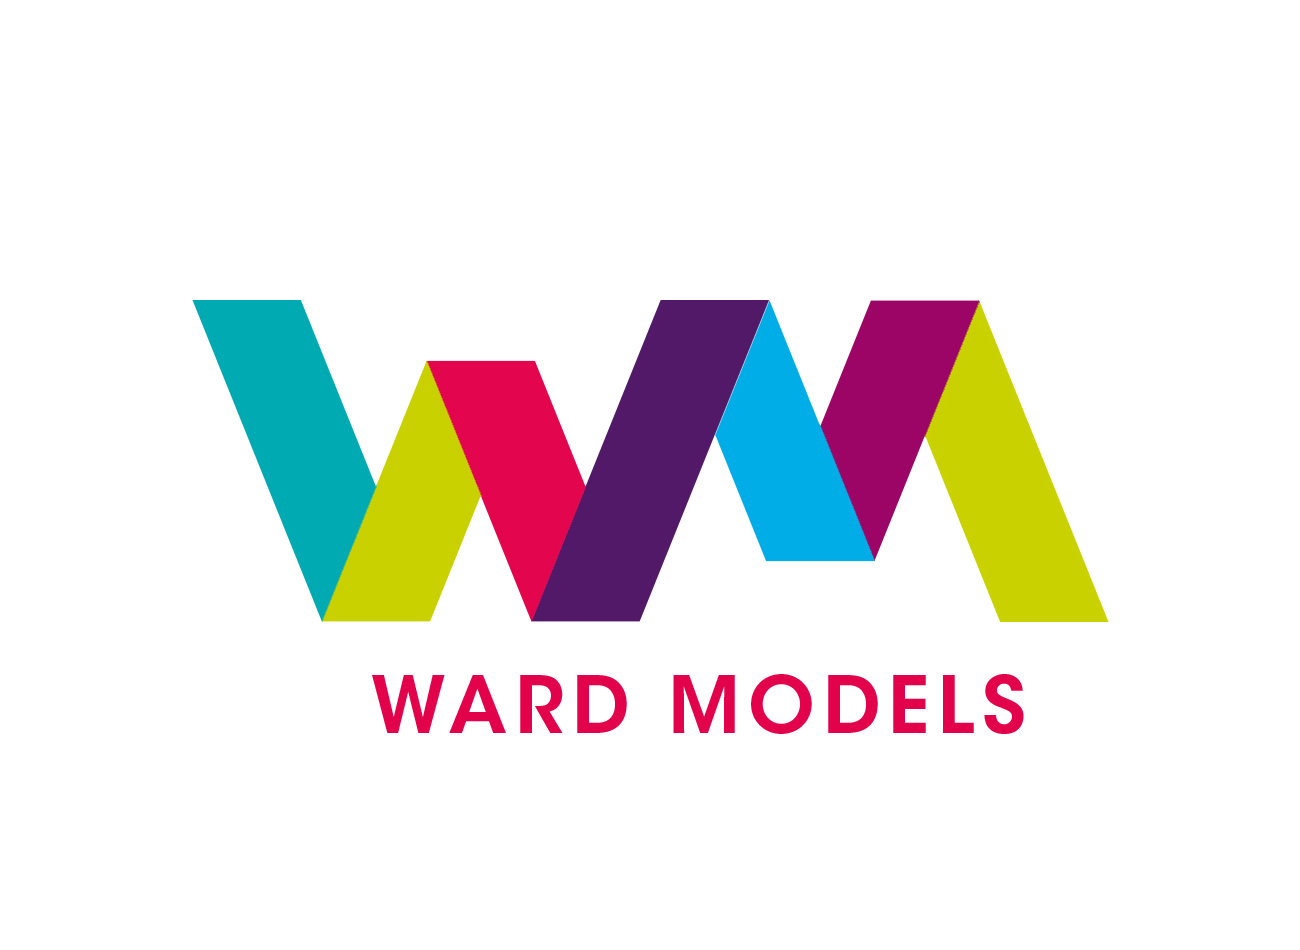 ward-models-agency-iconic-logo-designers-agent-orange-south-african-best-creative-agencies.jpg